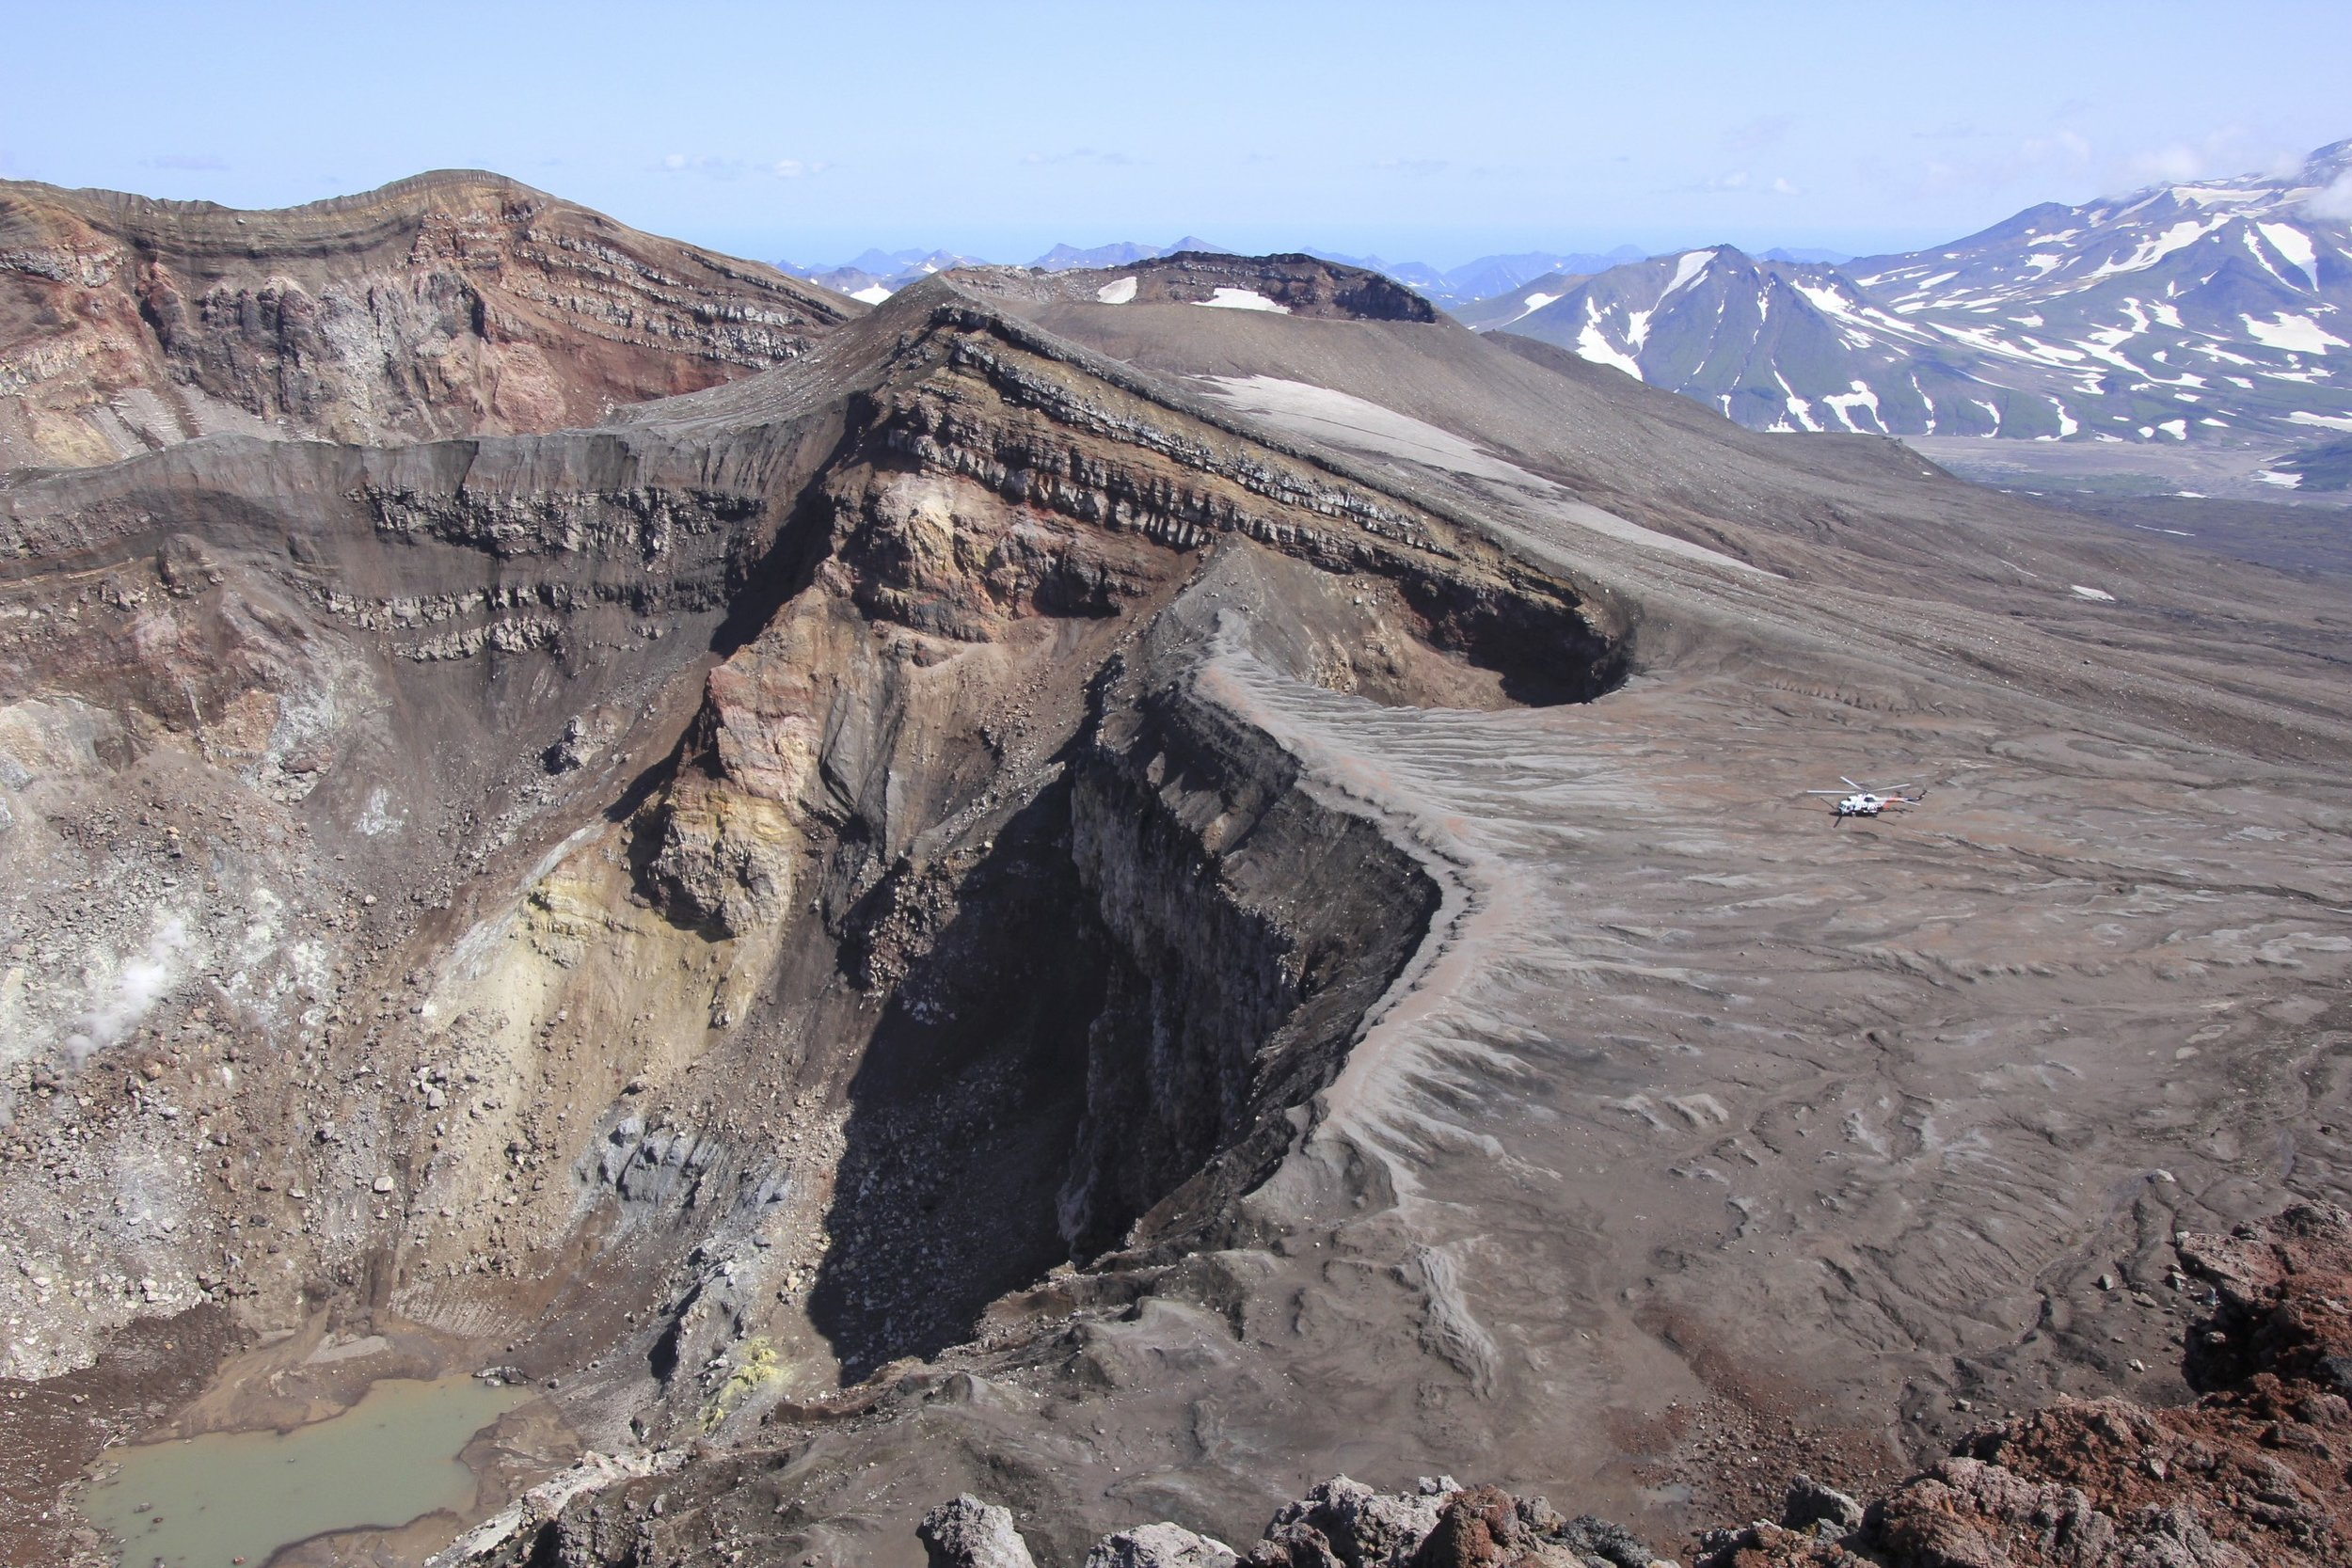 The Mi8 helicopter parked at the rim of the active crater on Gorely Volcano.